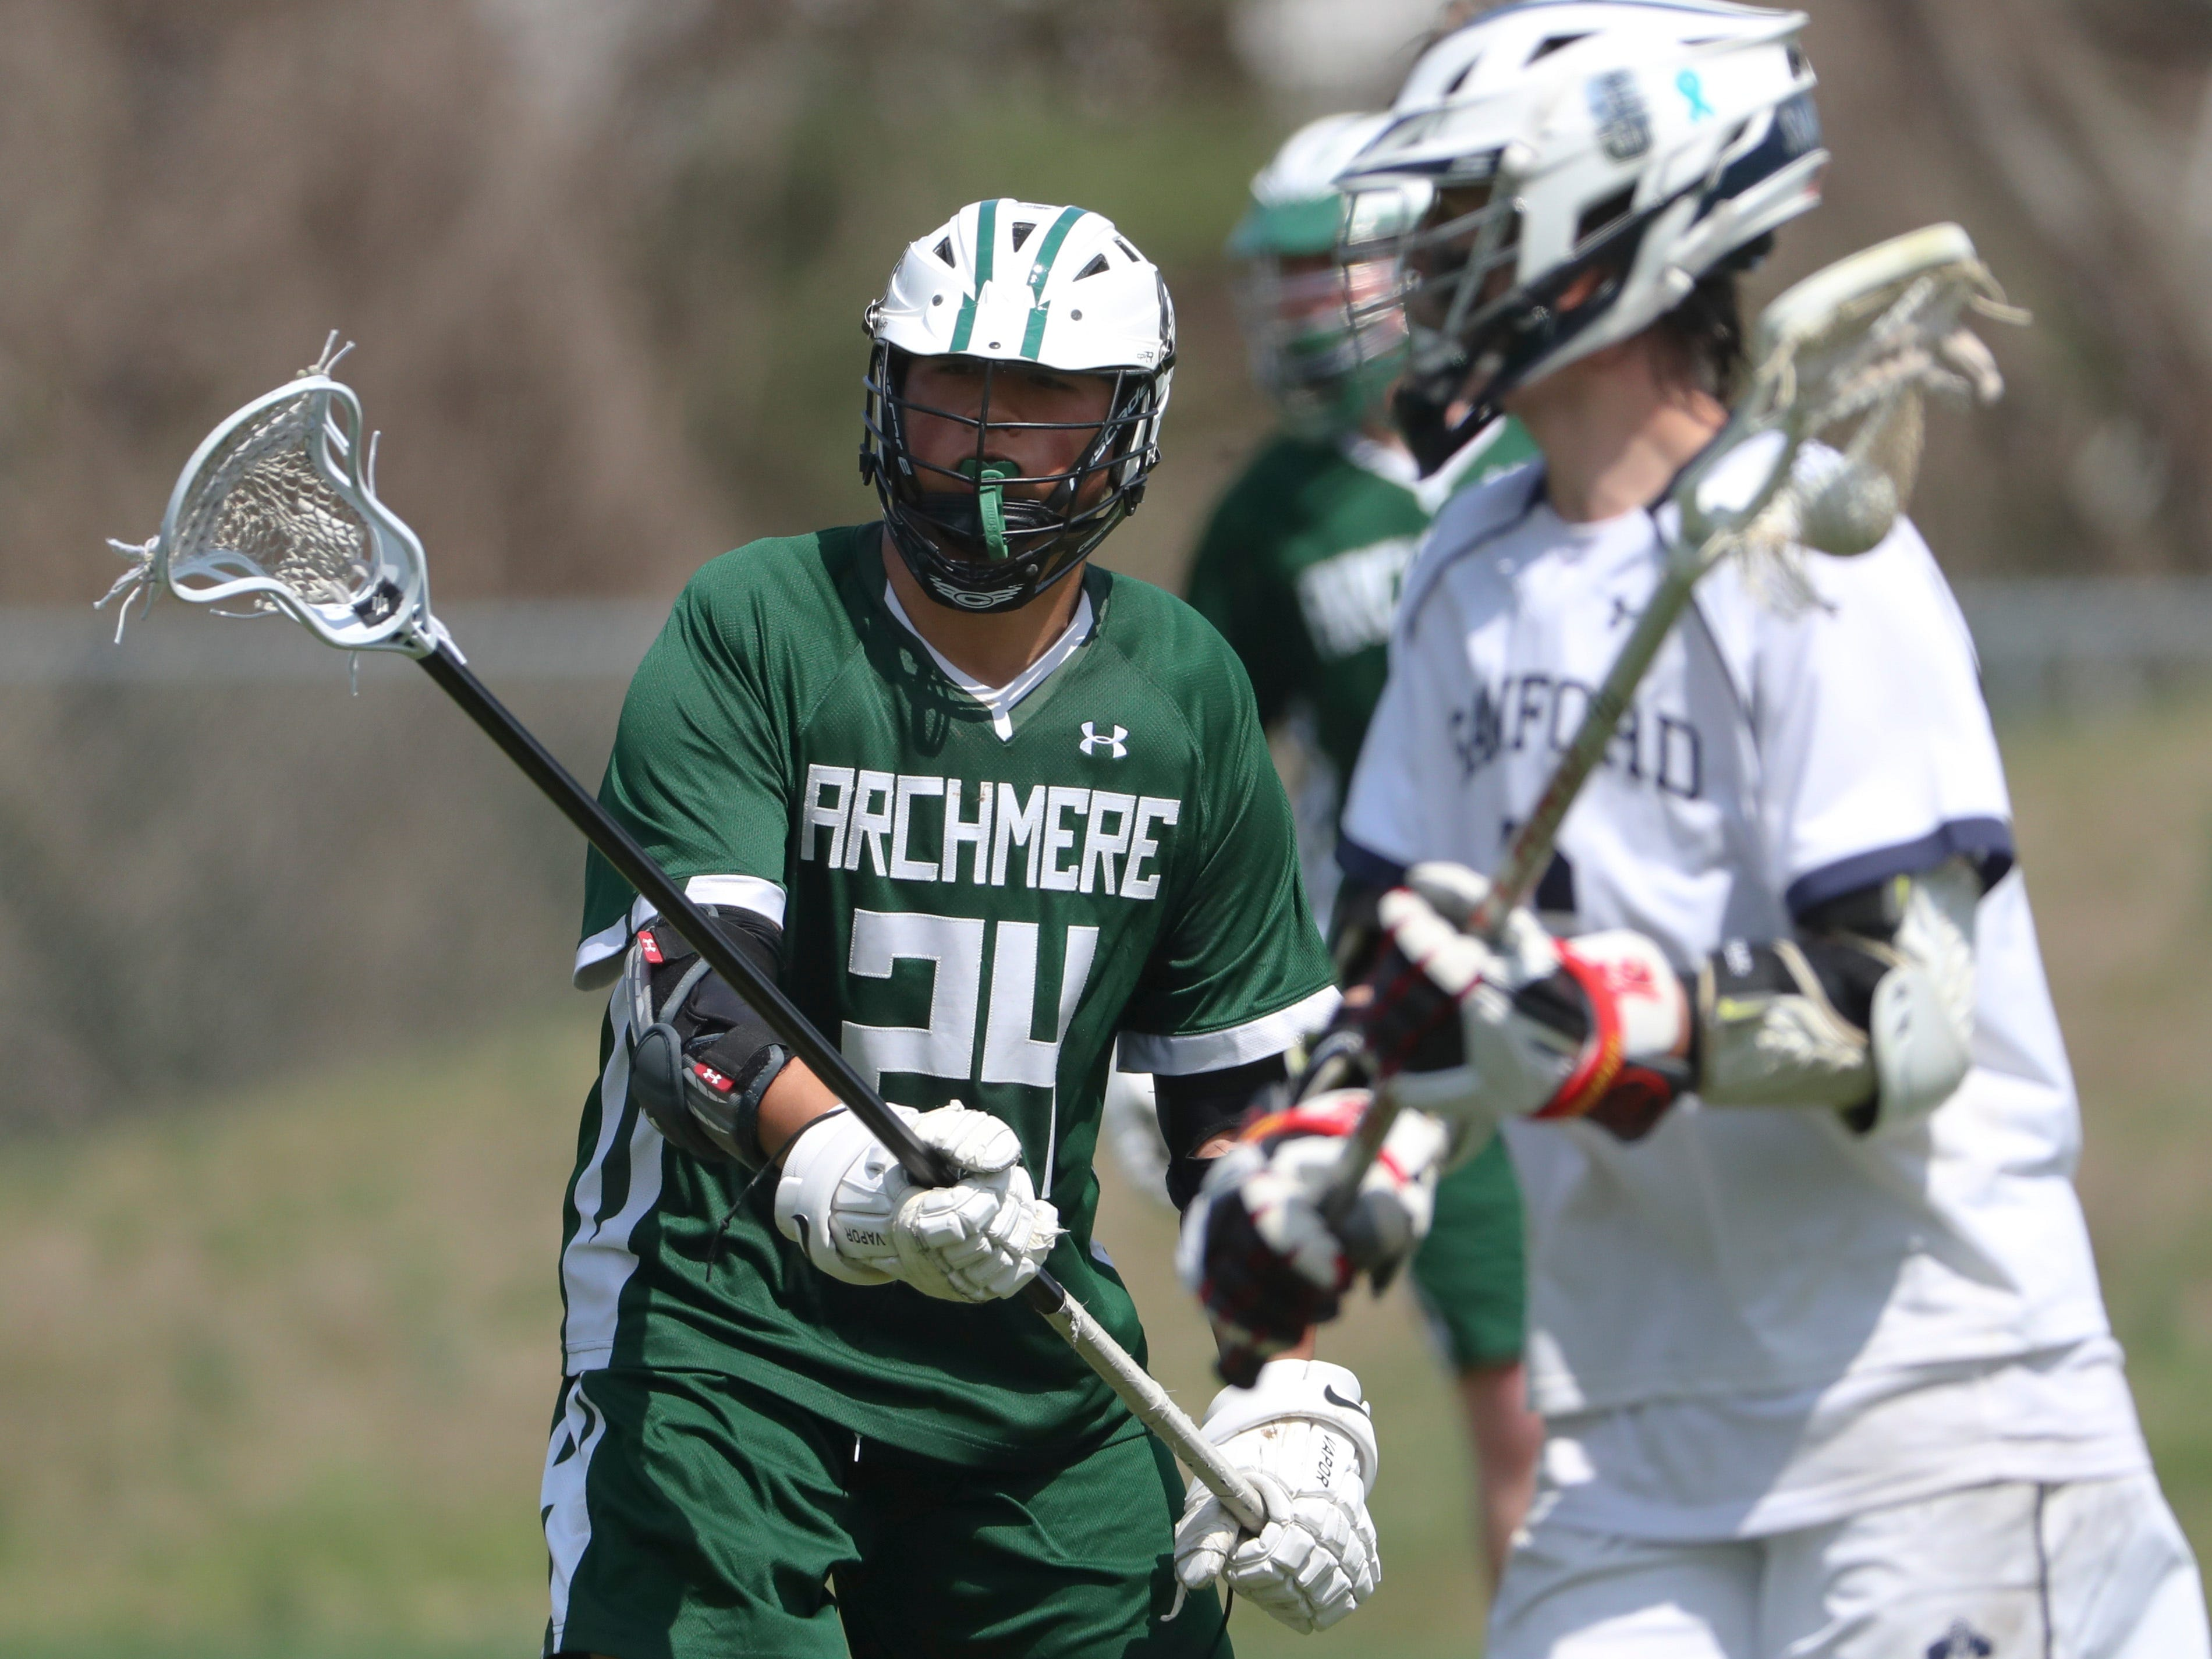 Archmere's Andrew Shi eyes the ball on defense in the second half of Sanford's 12-10 win Saturday.